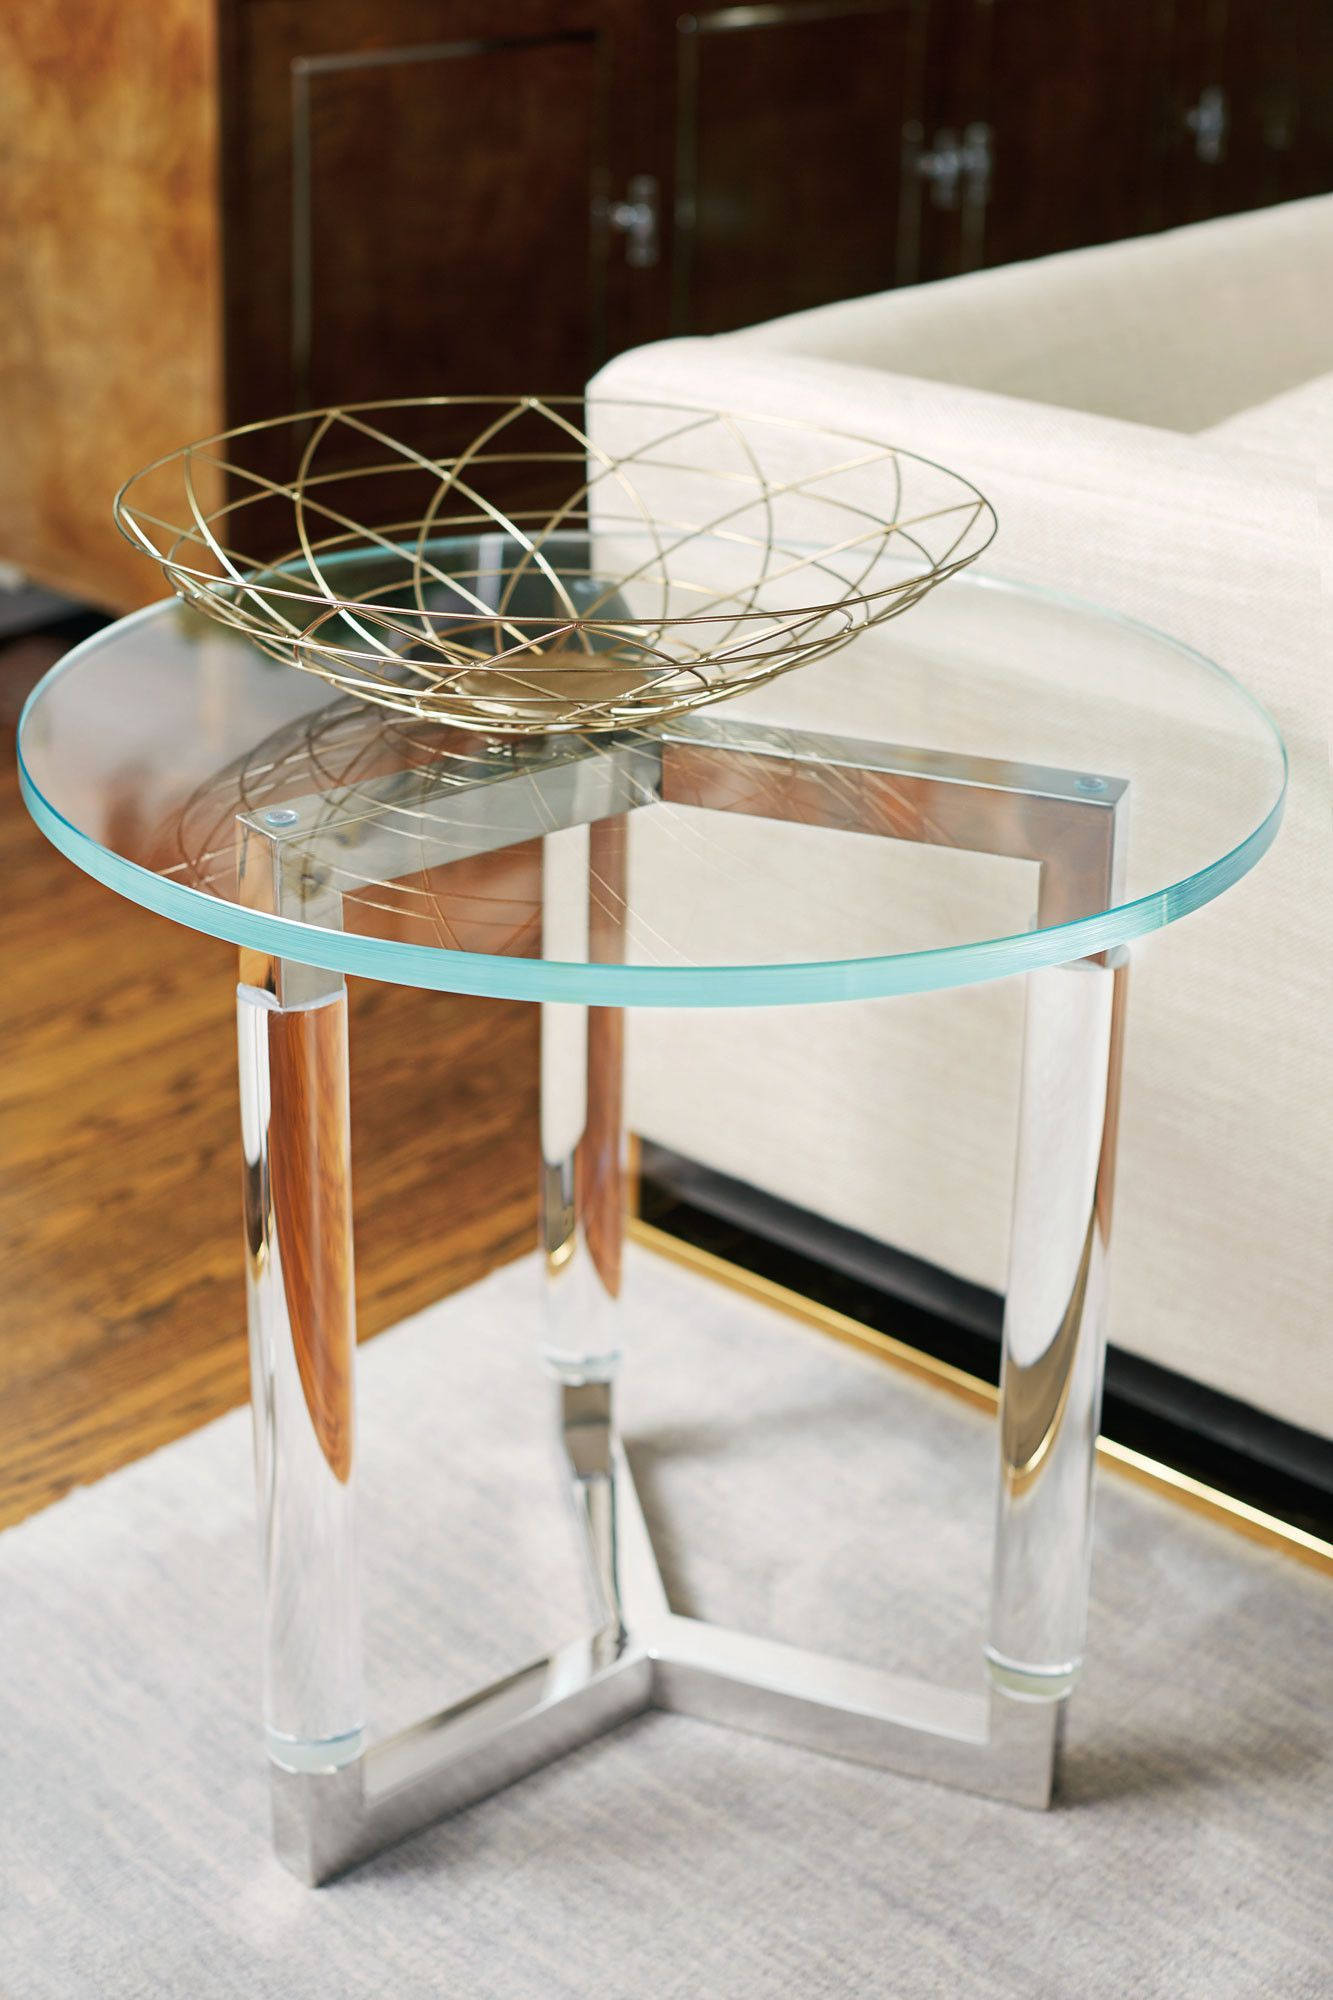 Soho Luxe Round End Table Bernhardt Luxe Home Philadelphia Stainless Steel Side Table Luxury Coffee Table Bernhardt Furniture [ 2000 x 1333 Pixel ]